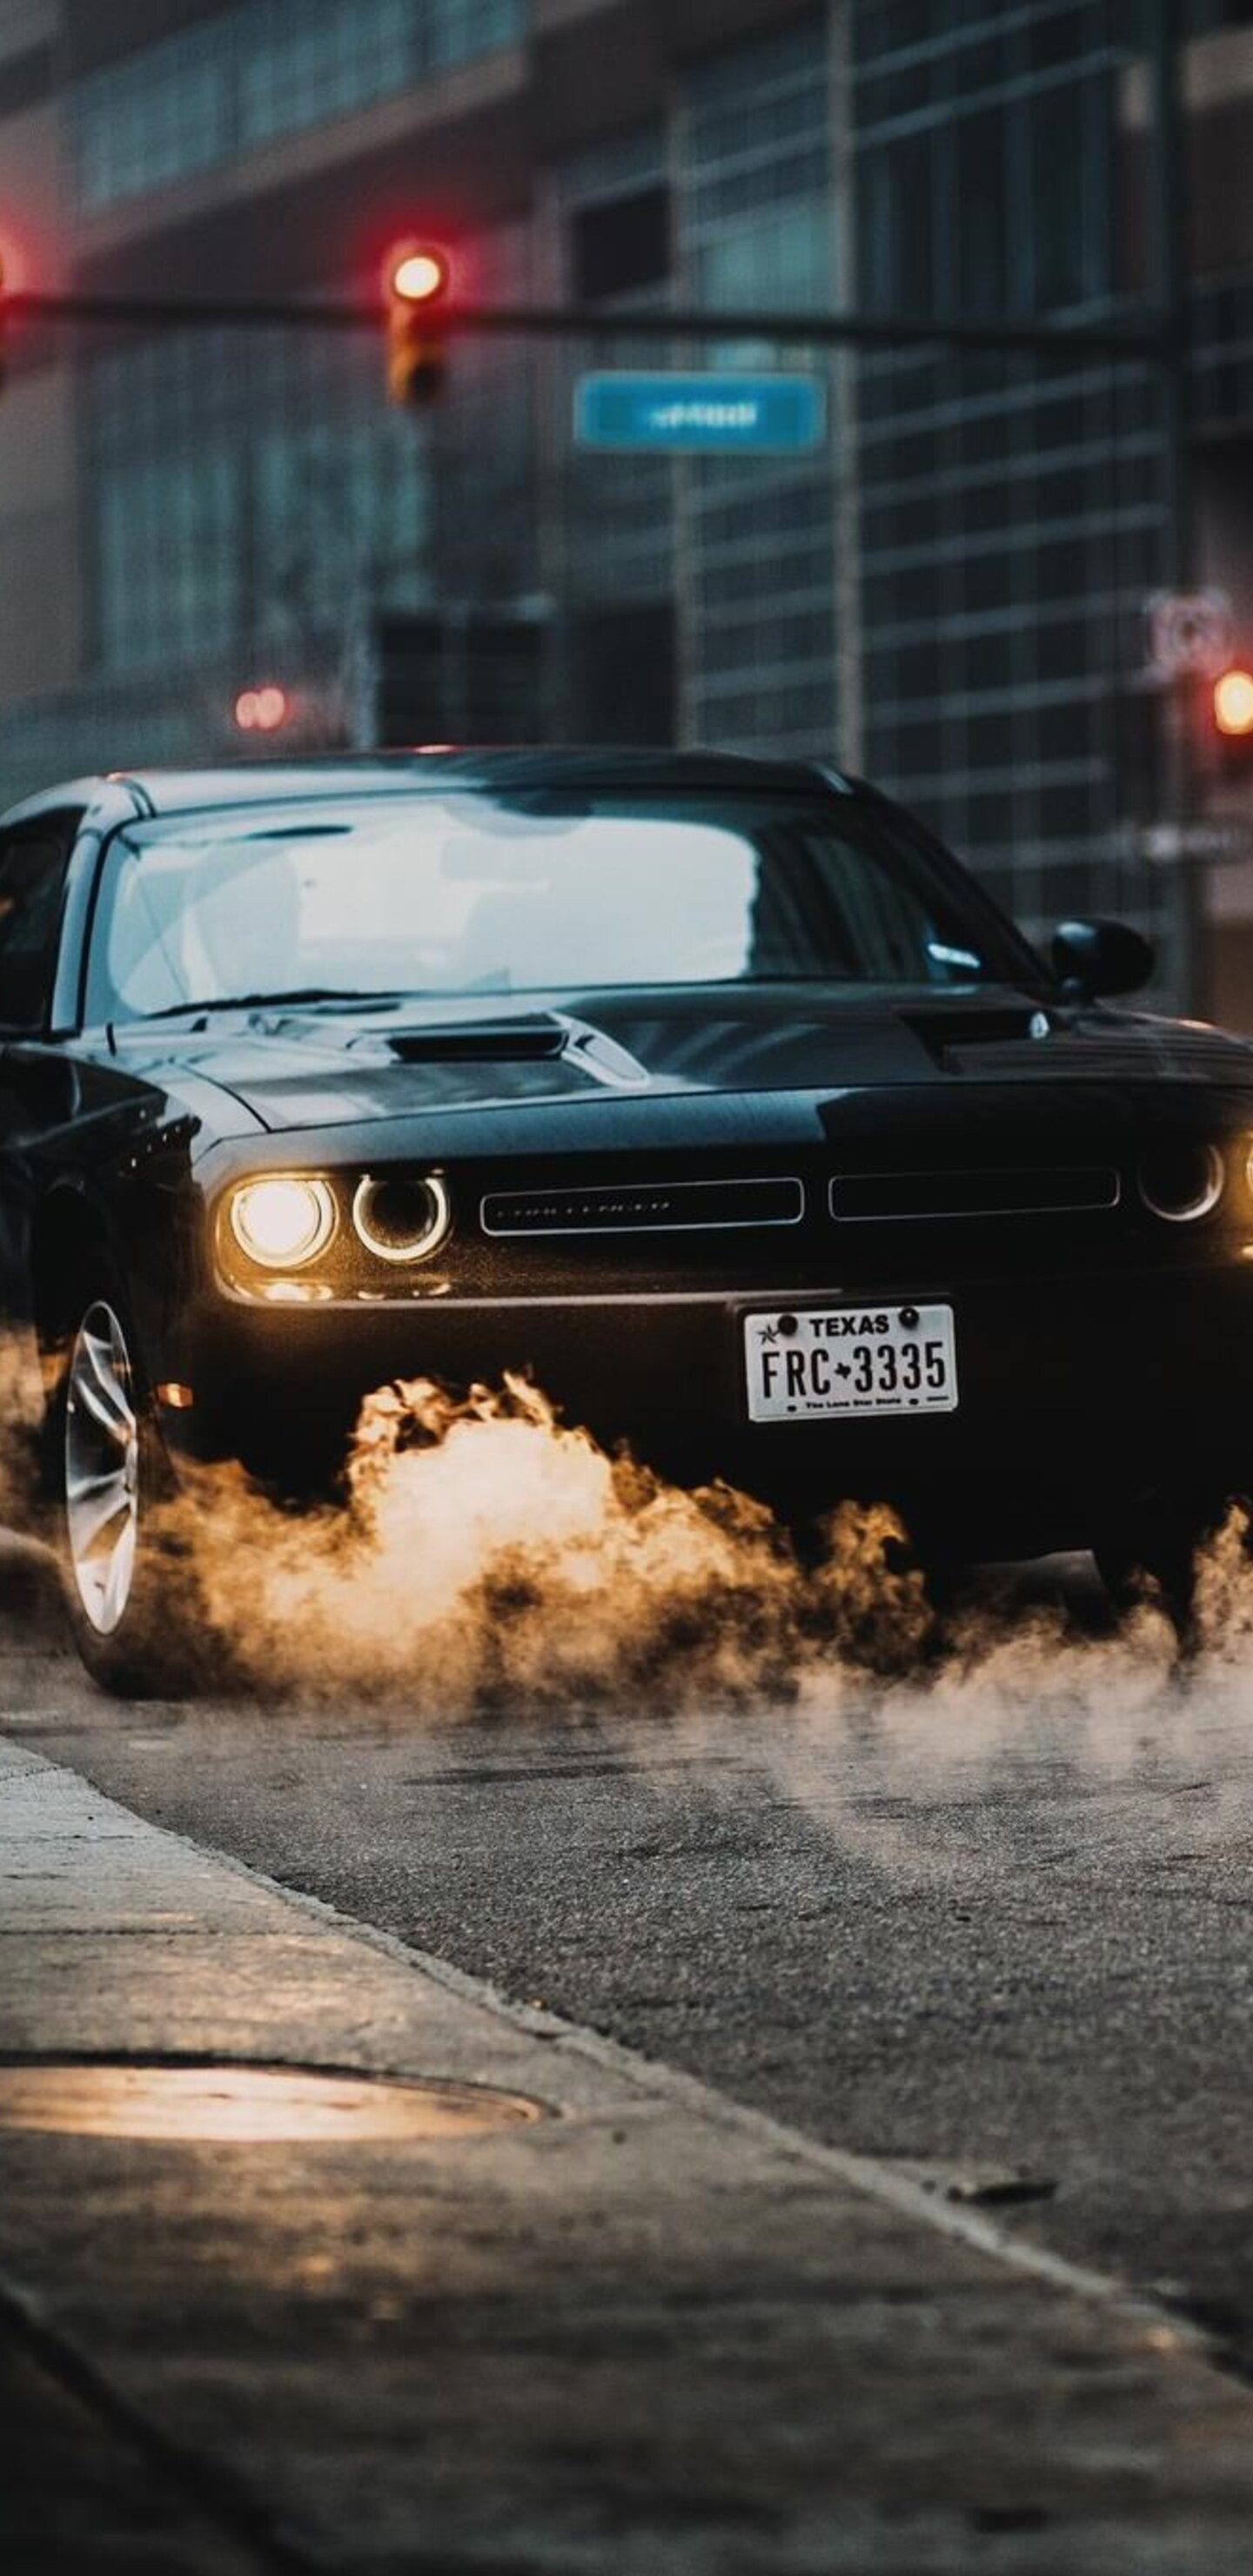 1440x2960 Muscle Car In City Samsung Galaxy Note 9 8 S9 S8 S8 Qhd